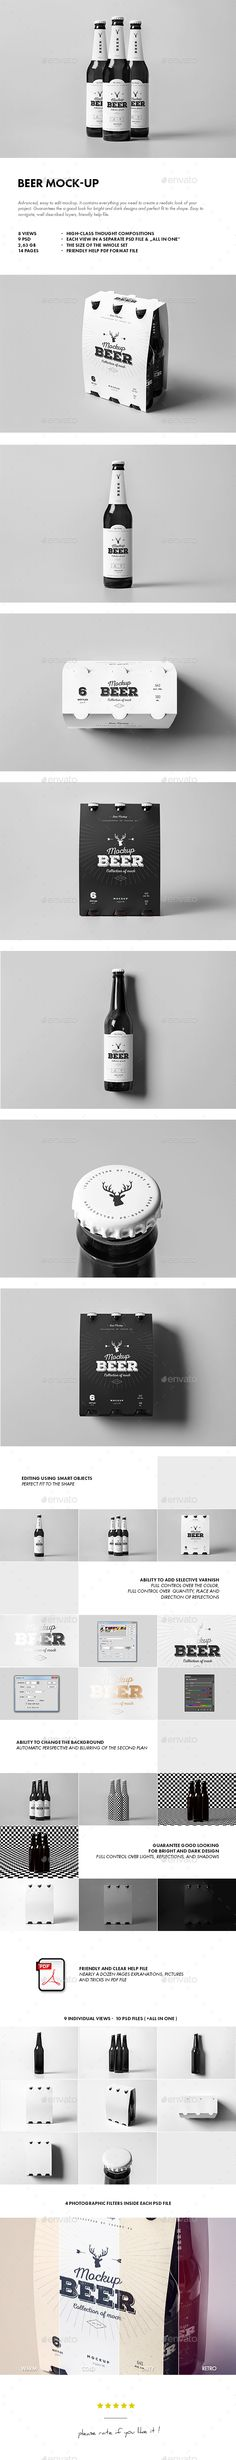 Beer Mock-up. Download here: http://graphicriver.net/item/beer-mockup/15173886?ref=ksioks